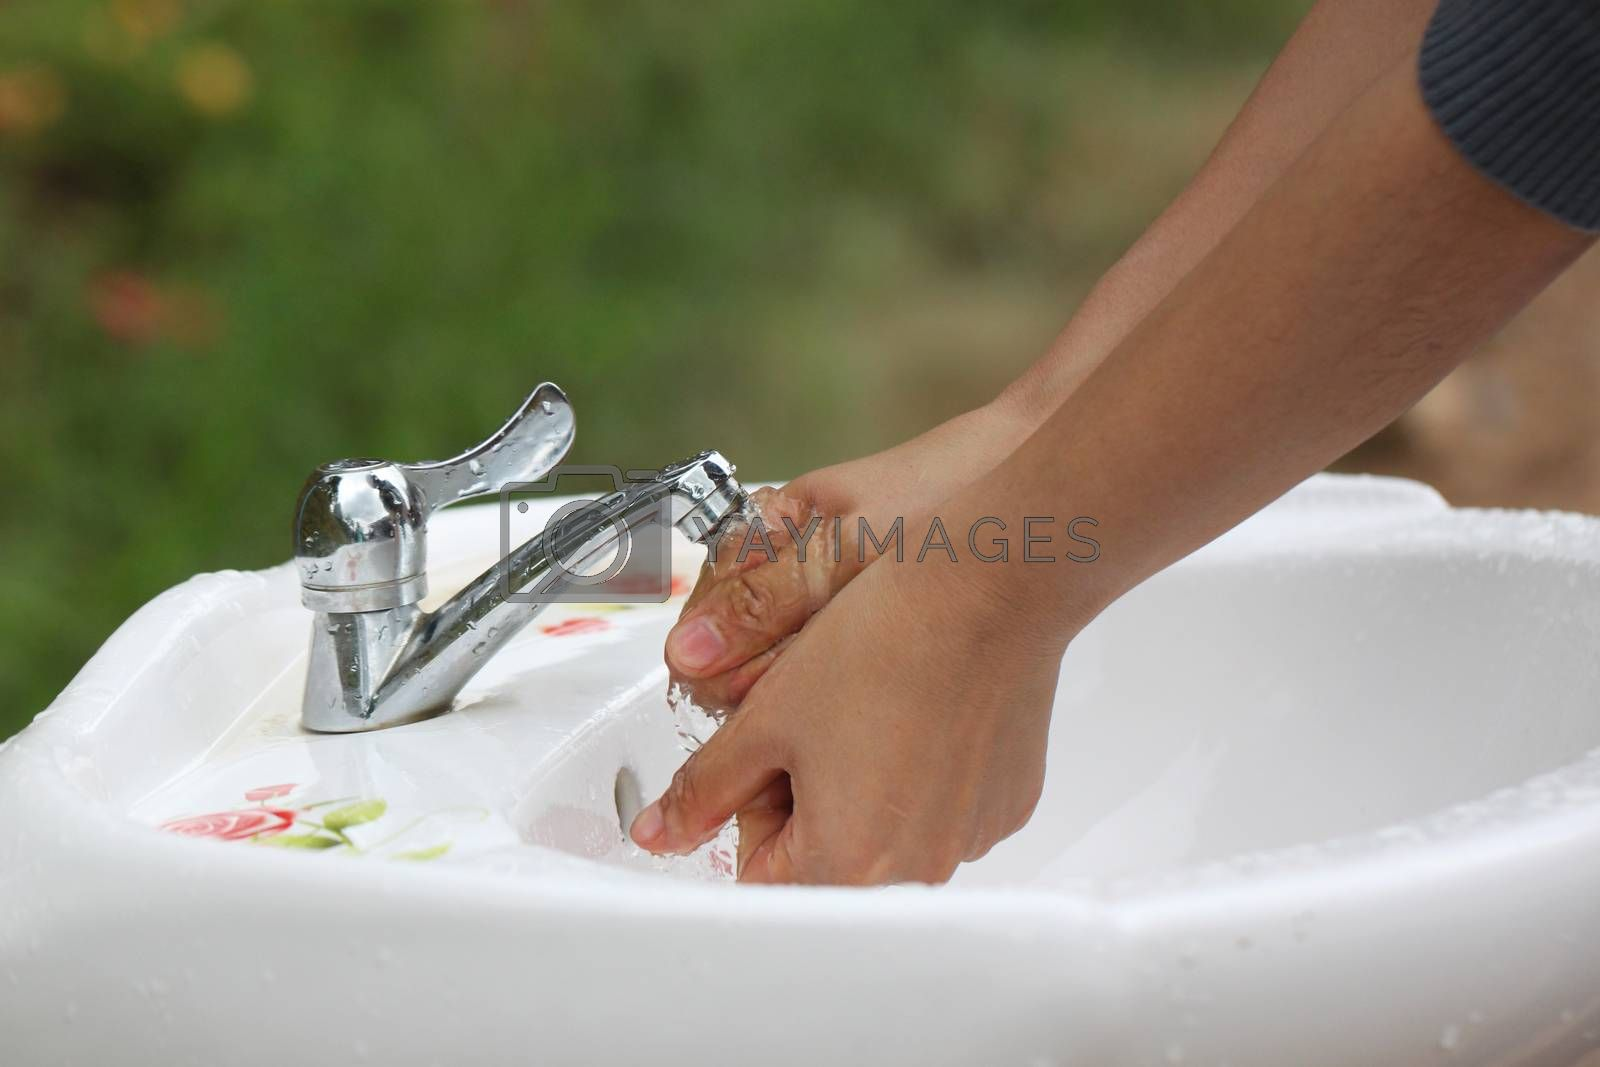 Women's hands are washed clean of faucets.